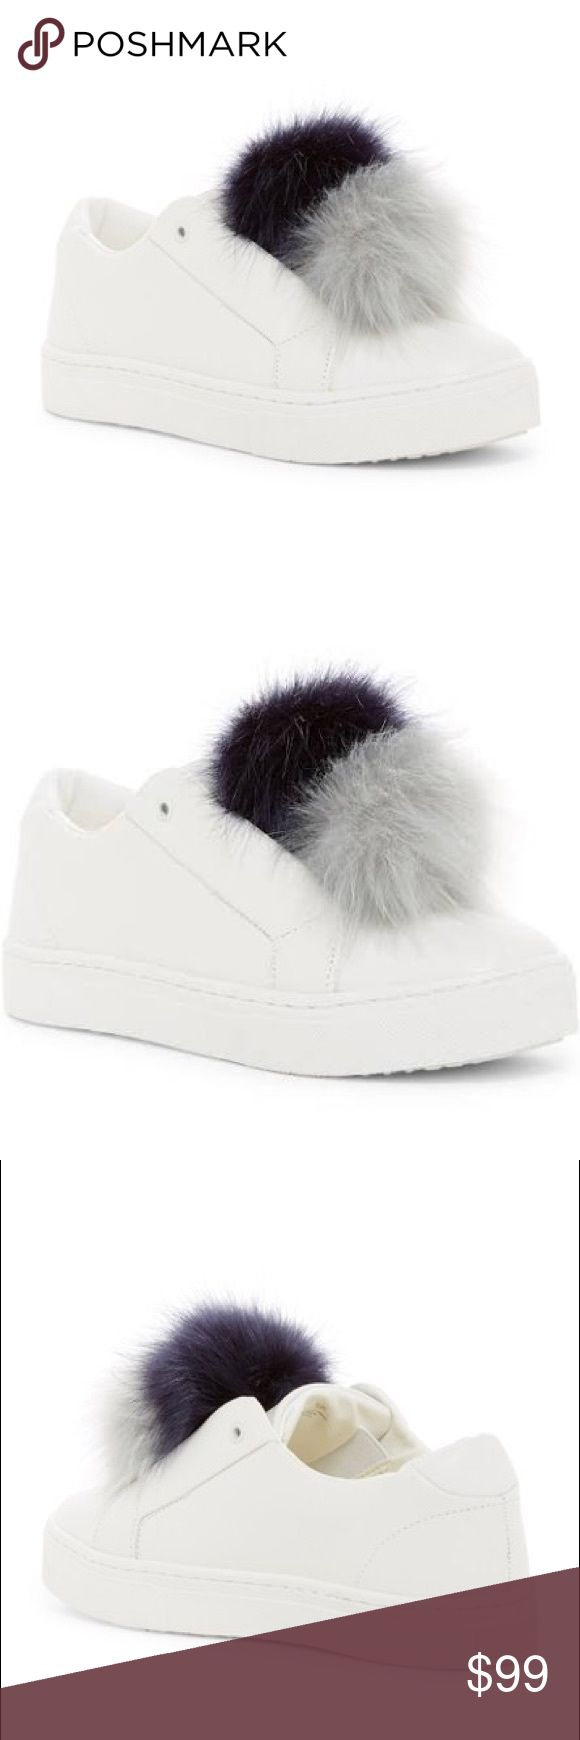 New SAM EDELMAN Leather Shoe Sz 6 NWT NEW Sam Edelman White Leather With Navy/Grey Pompom Round toe, Pompom embellished vamp, Slip-on style, Padded footbed, Grip sole, laceless, comfy, cute Sz 6 NWT Sam Edelman Shoes Sneakers